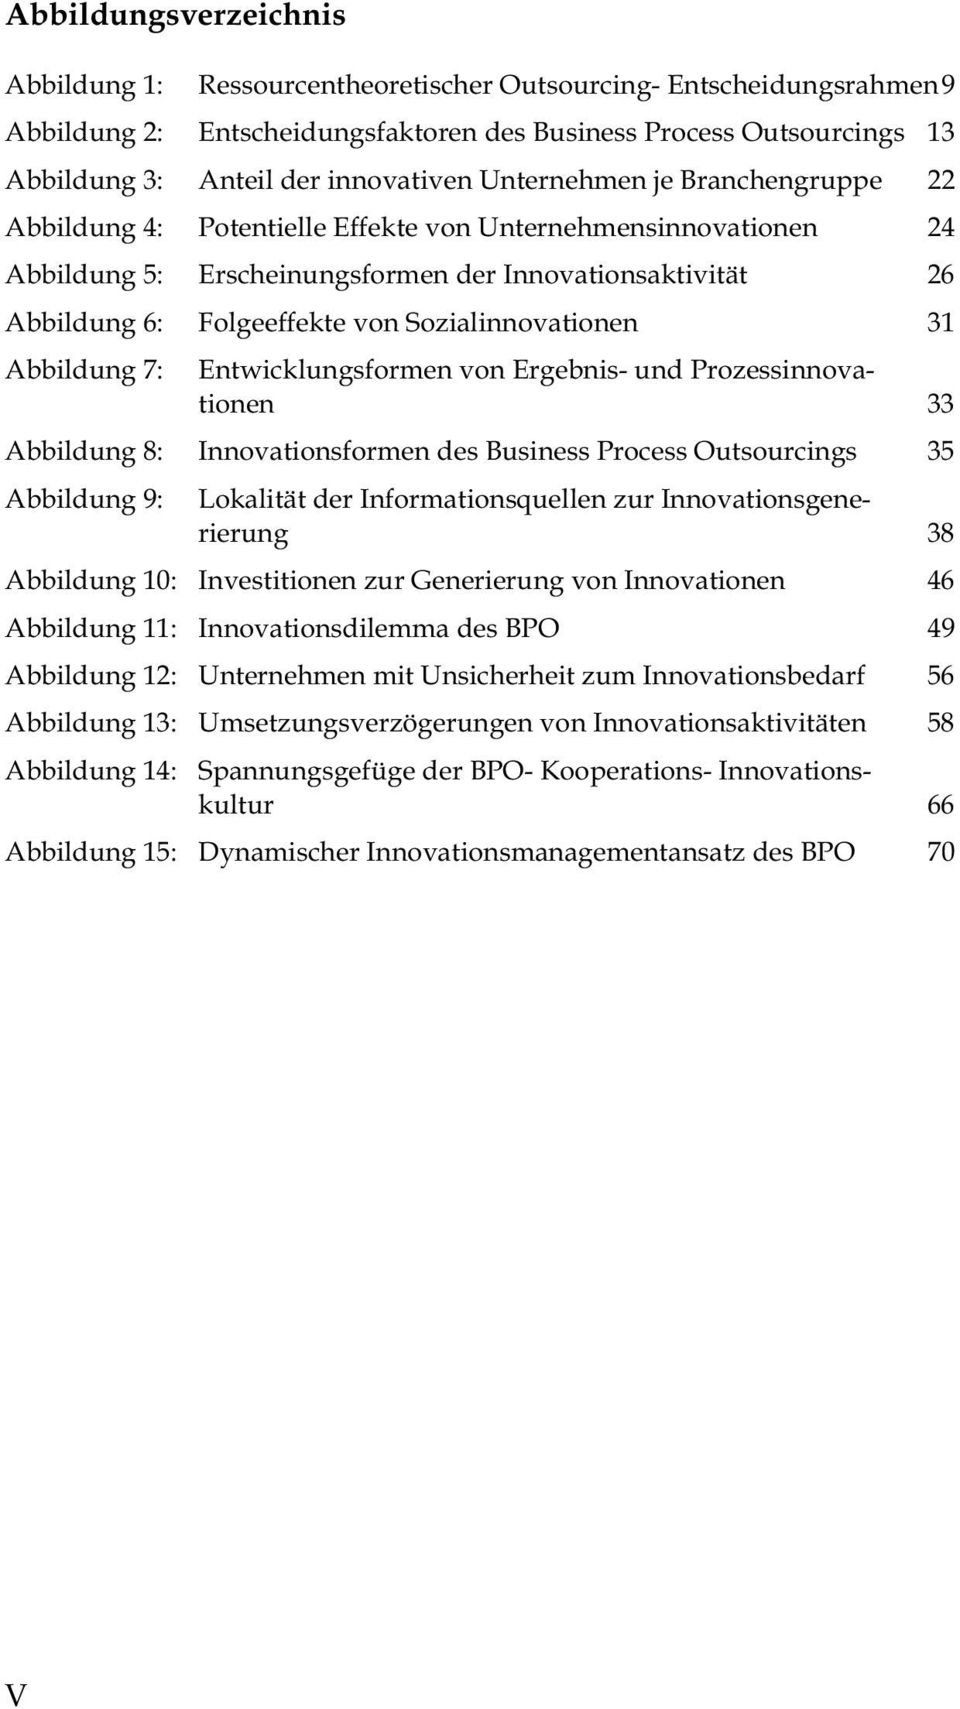 Sozialinnovationen 31 Abbildung 7: Entwicklungsformen von Ergebnis- und Prozessinnovationen 33 Abbildung 8: Innovationsformen des Business Process Outsourcings 35 Abbildung 9: Lokalität der